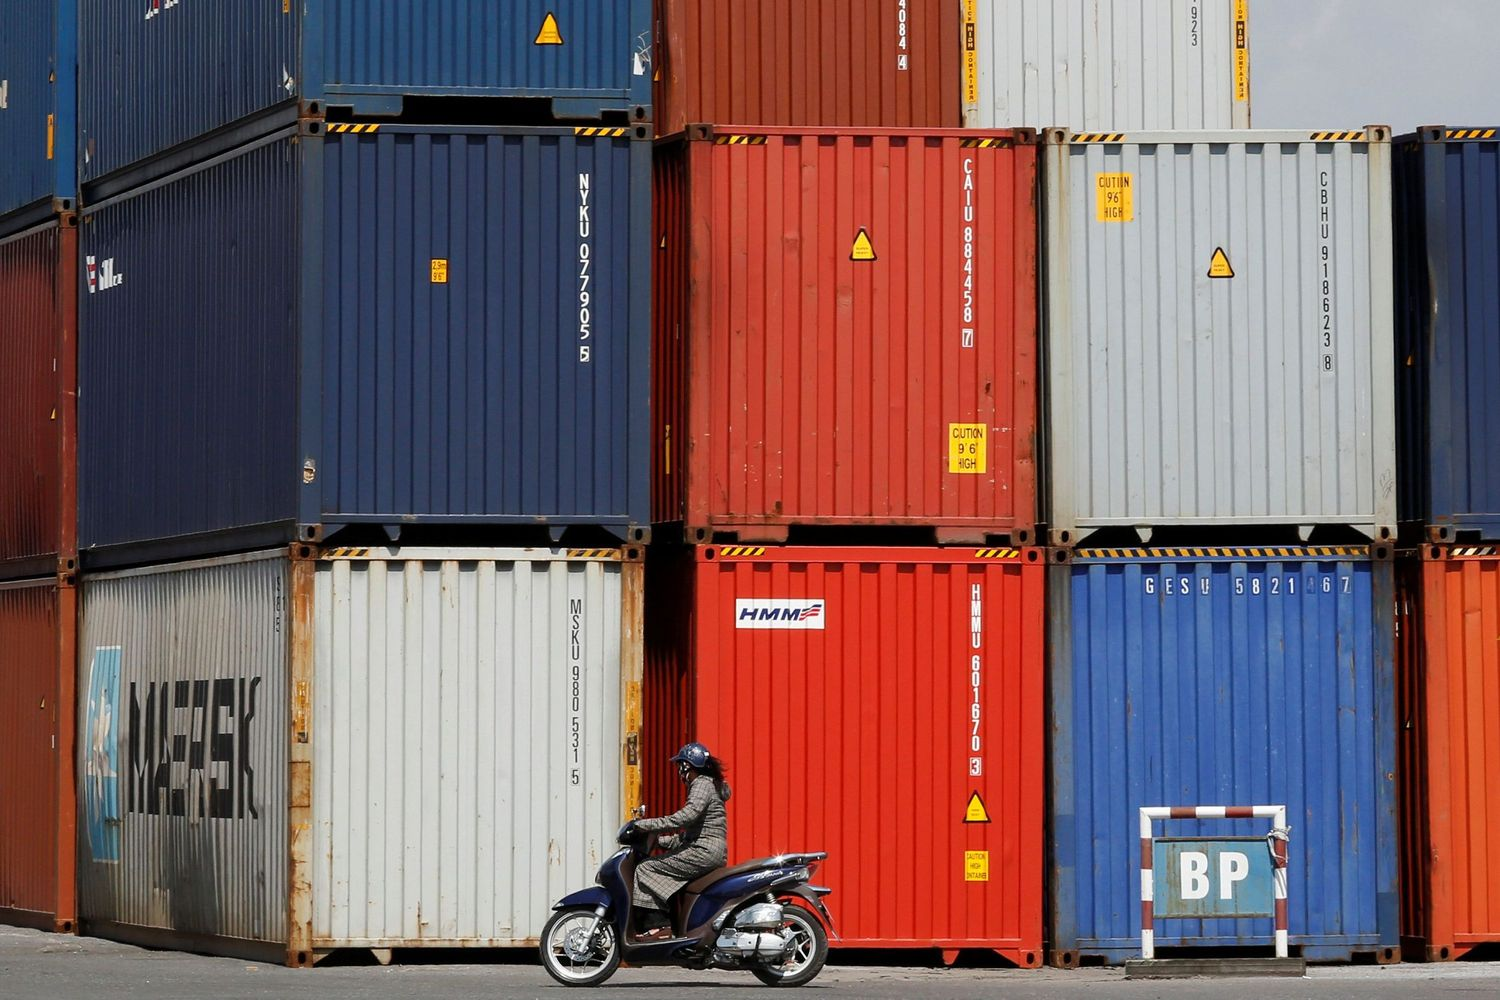 A woman rides a motorcycle as she passes containers at Hai Phong port, Vietnam, on Sept 25 last year. (Reuters photo)